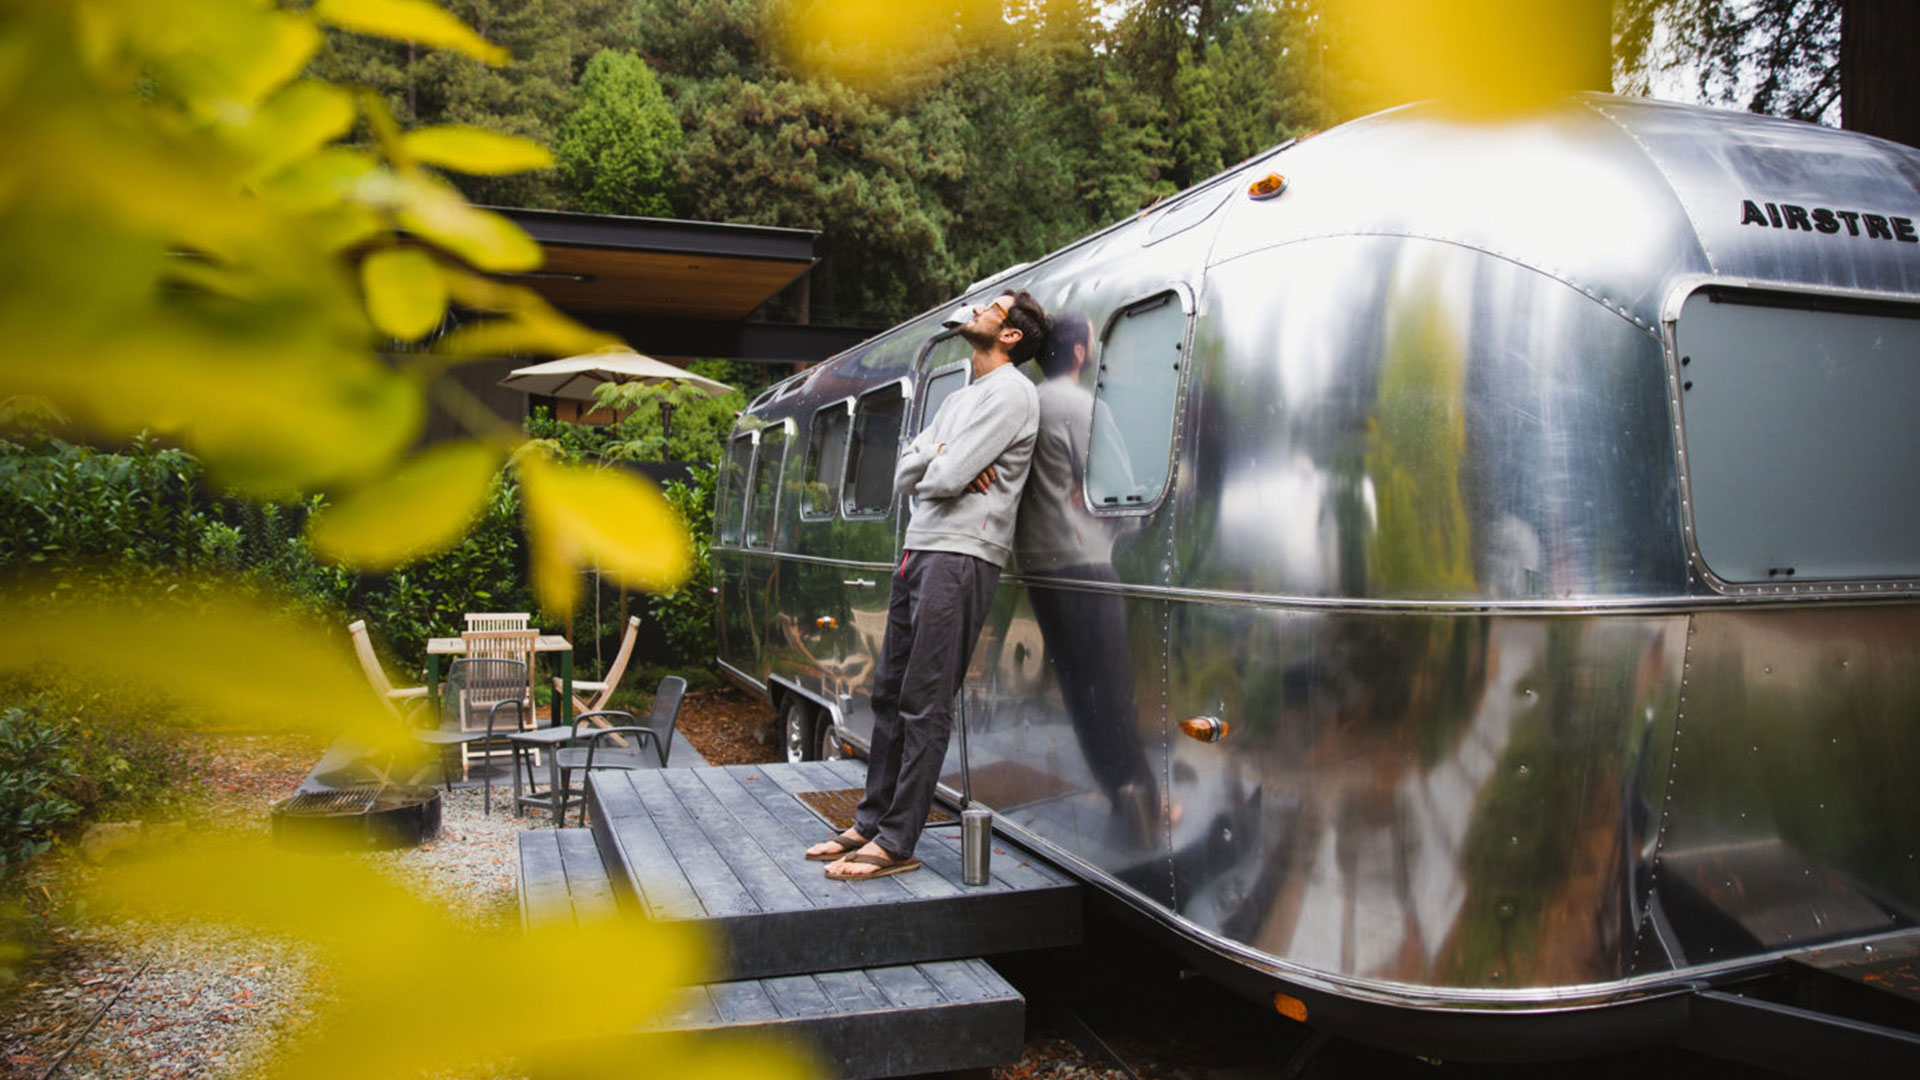 Yosemite AutoCamp: This Luxury Airstream Getaway is the Ultimate Summer Escape